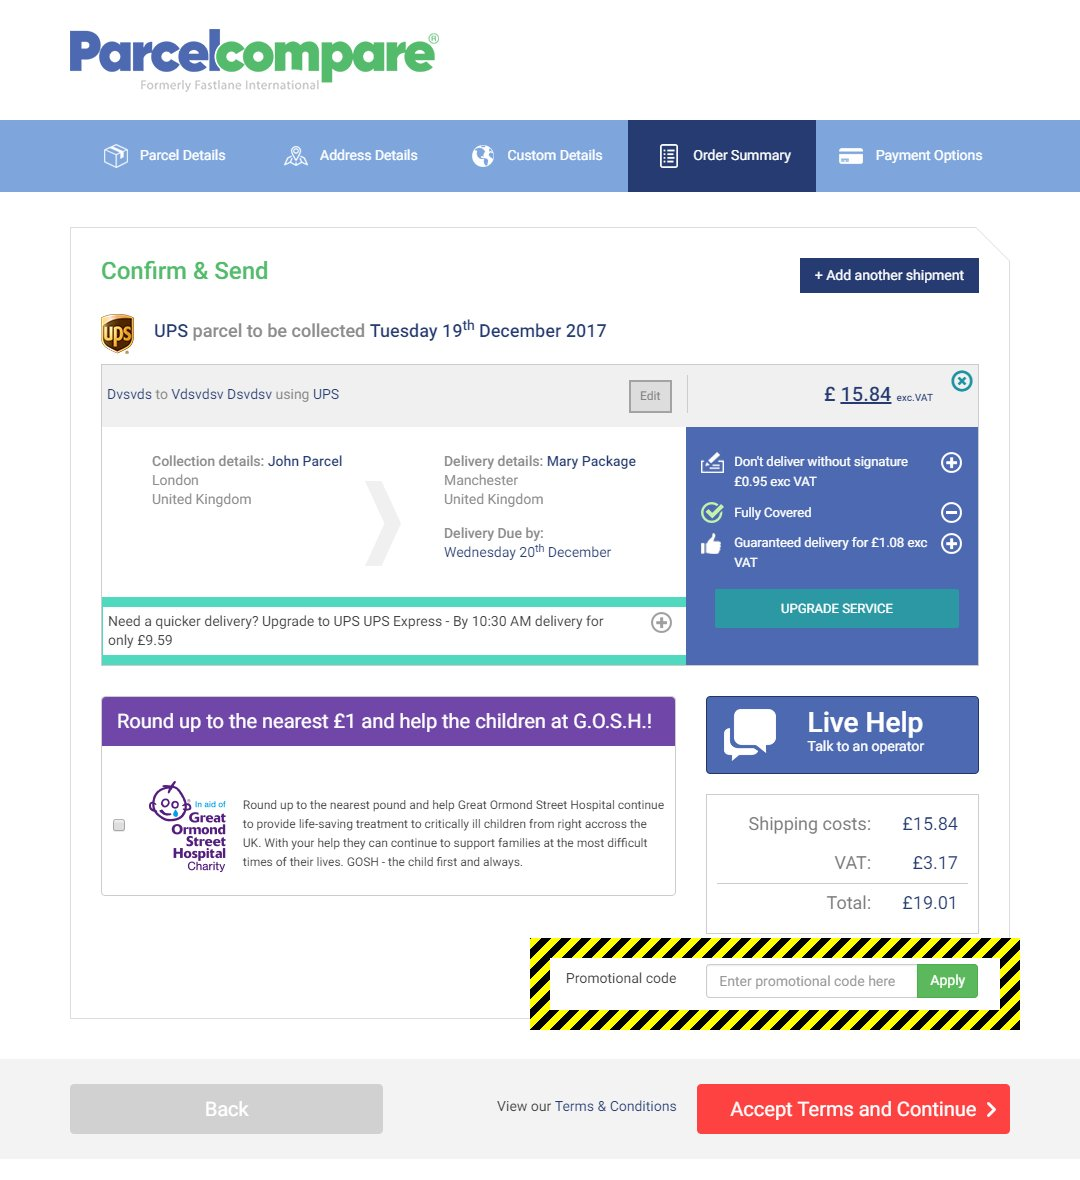 Parcelcompare Discount Code